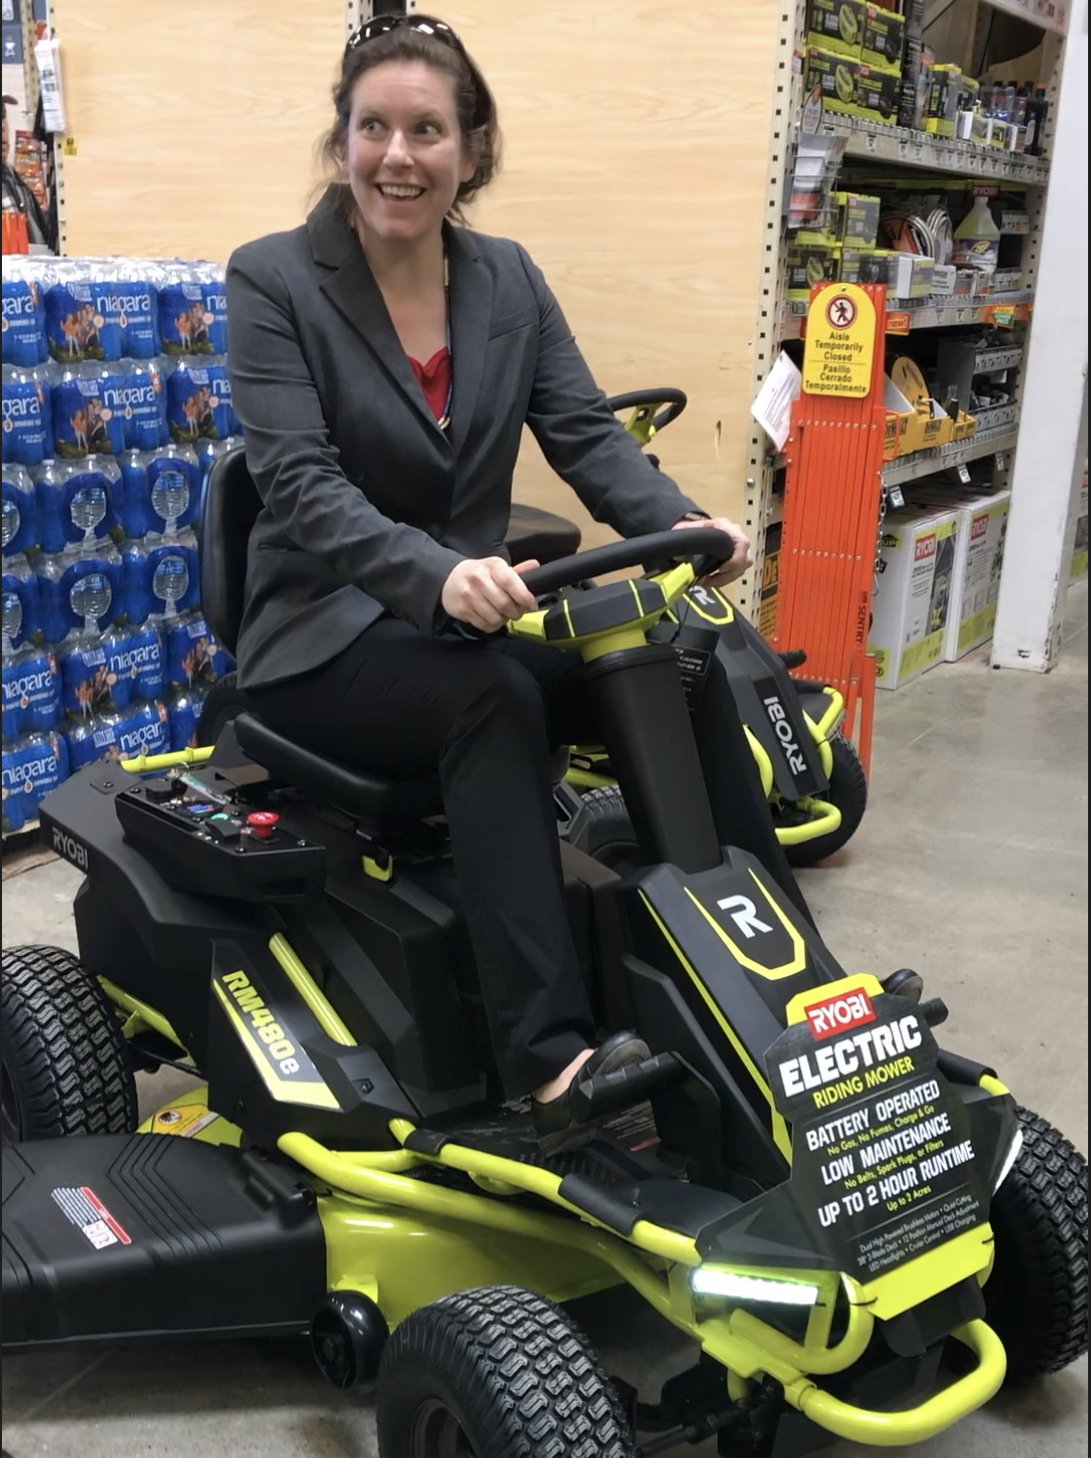 At Home Depot, Test-driving electric lawn mower